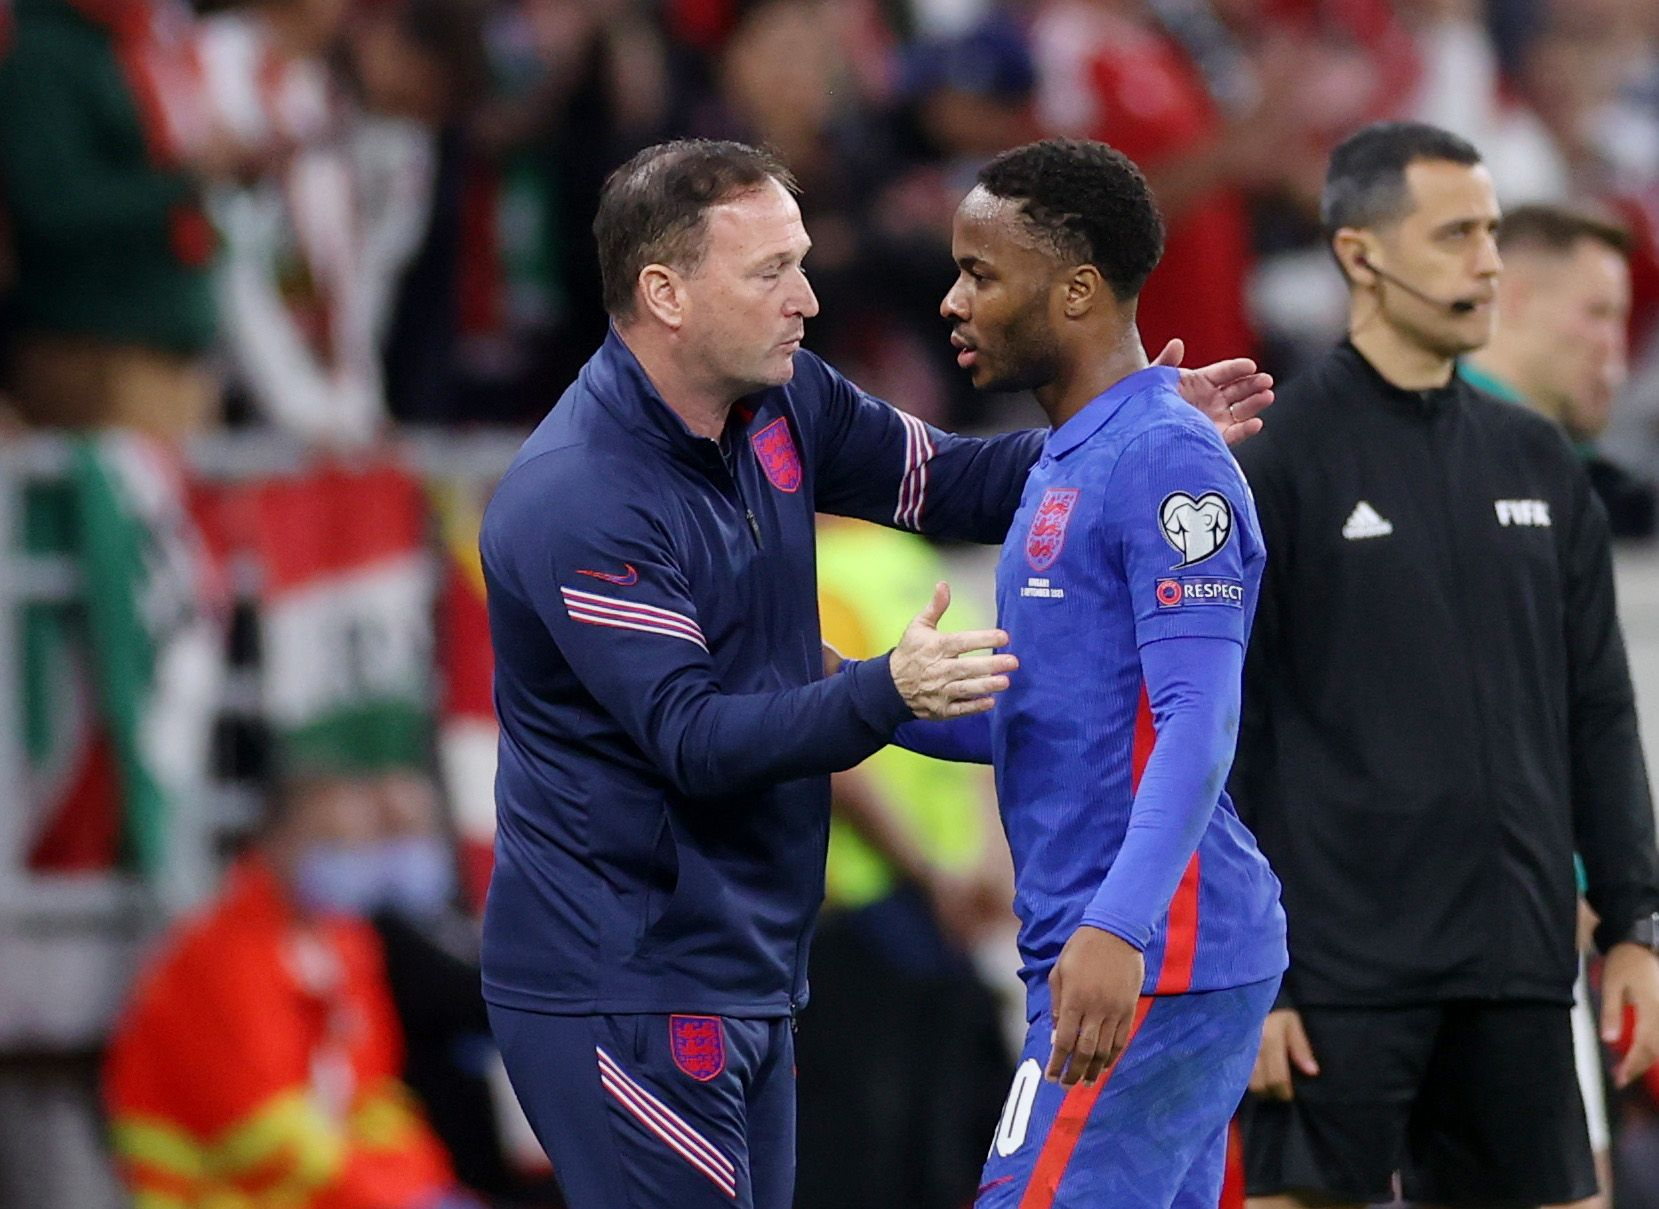 England Soccer Players Raheem Sterling and Jude Bellingham Hit With Cups and Racist Chants by Hungary Fans During Match in Budapest